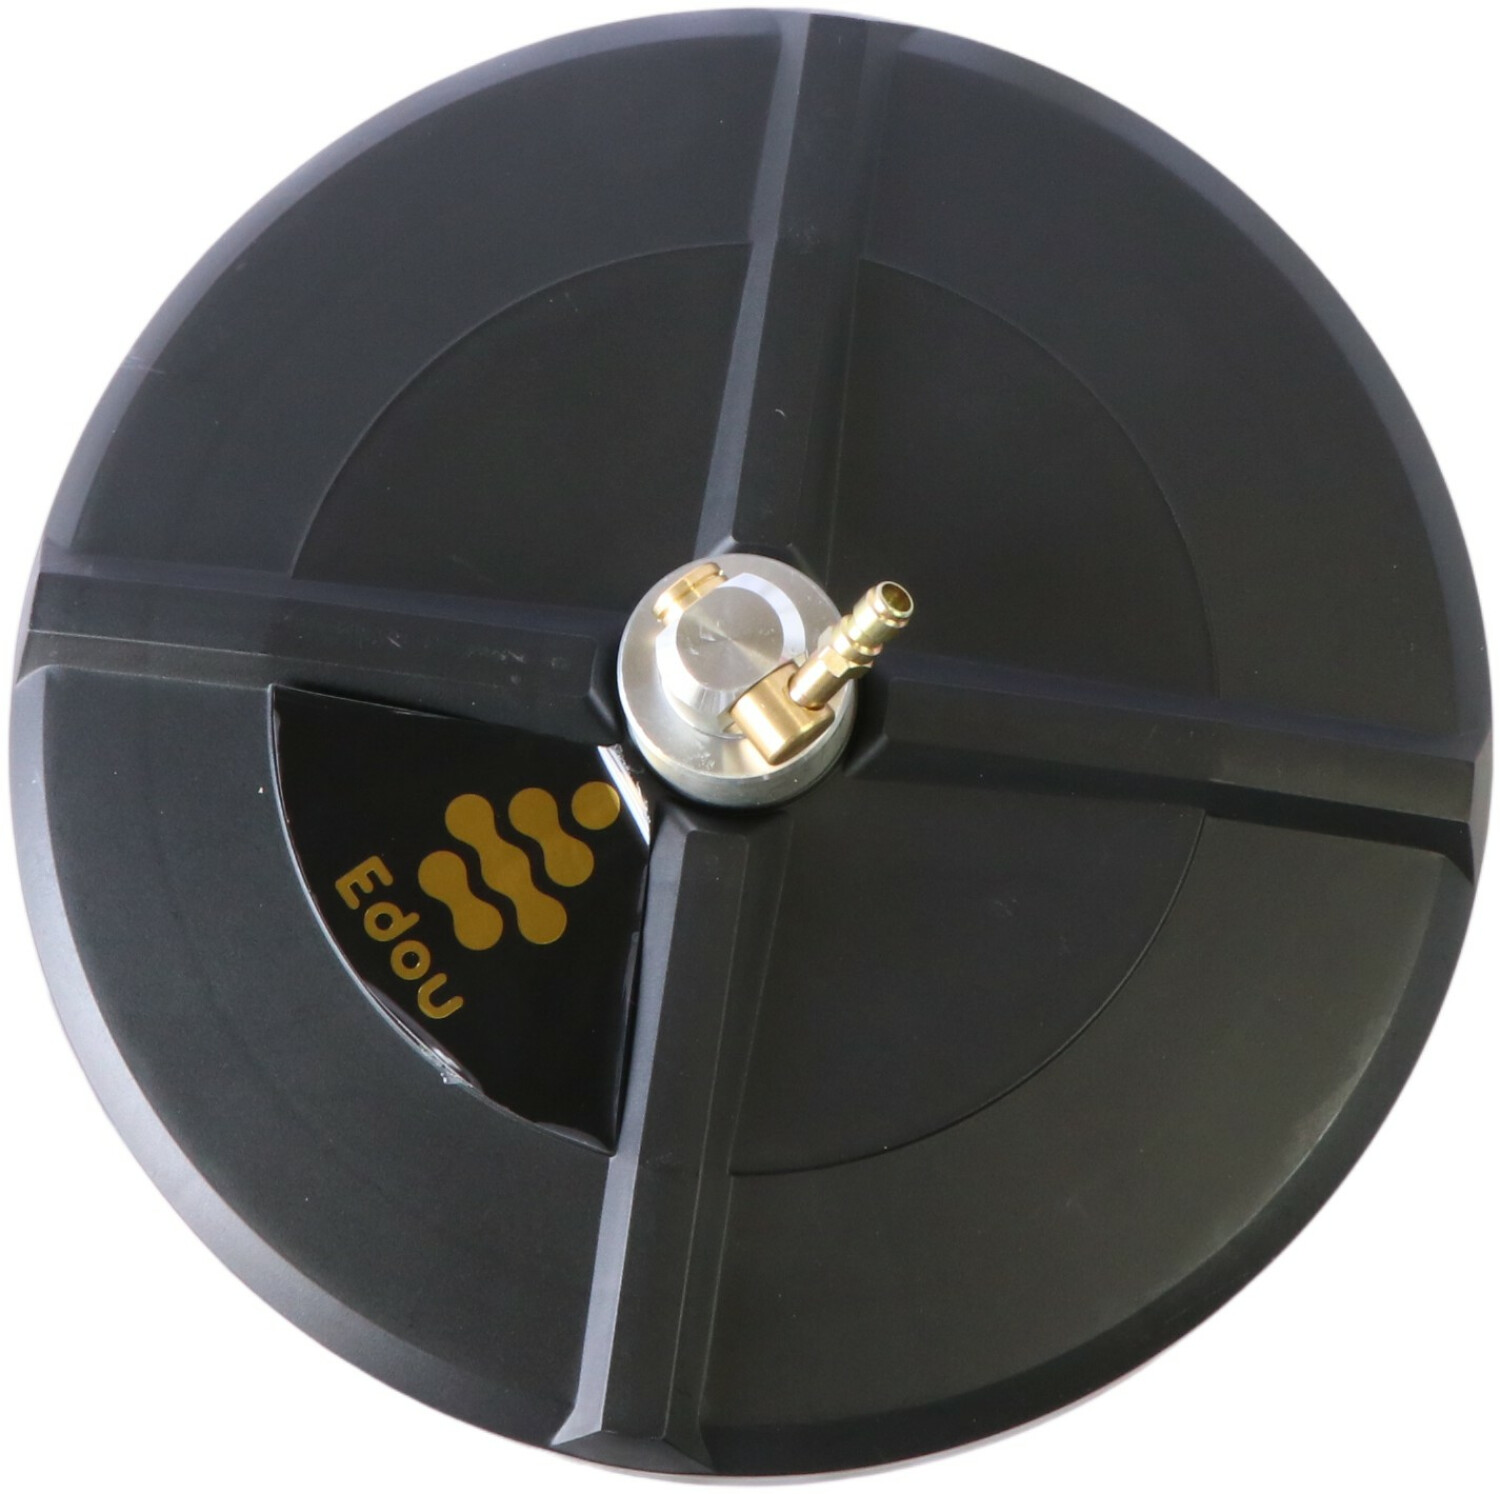 Edou 15 Inch Pressure Washer Surface Cleaner Accessory ED3981